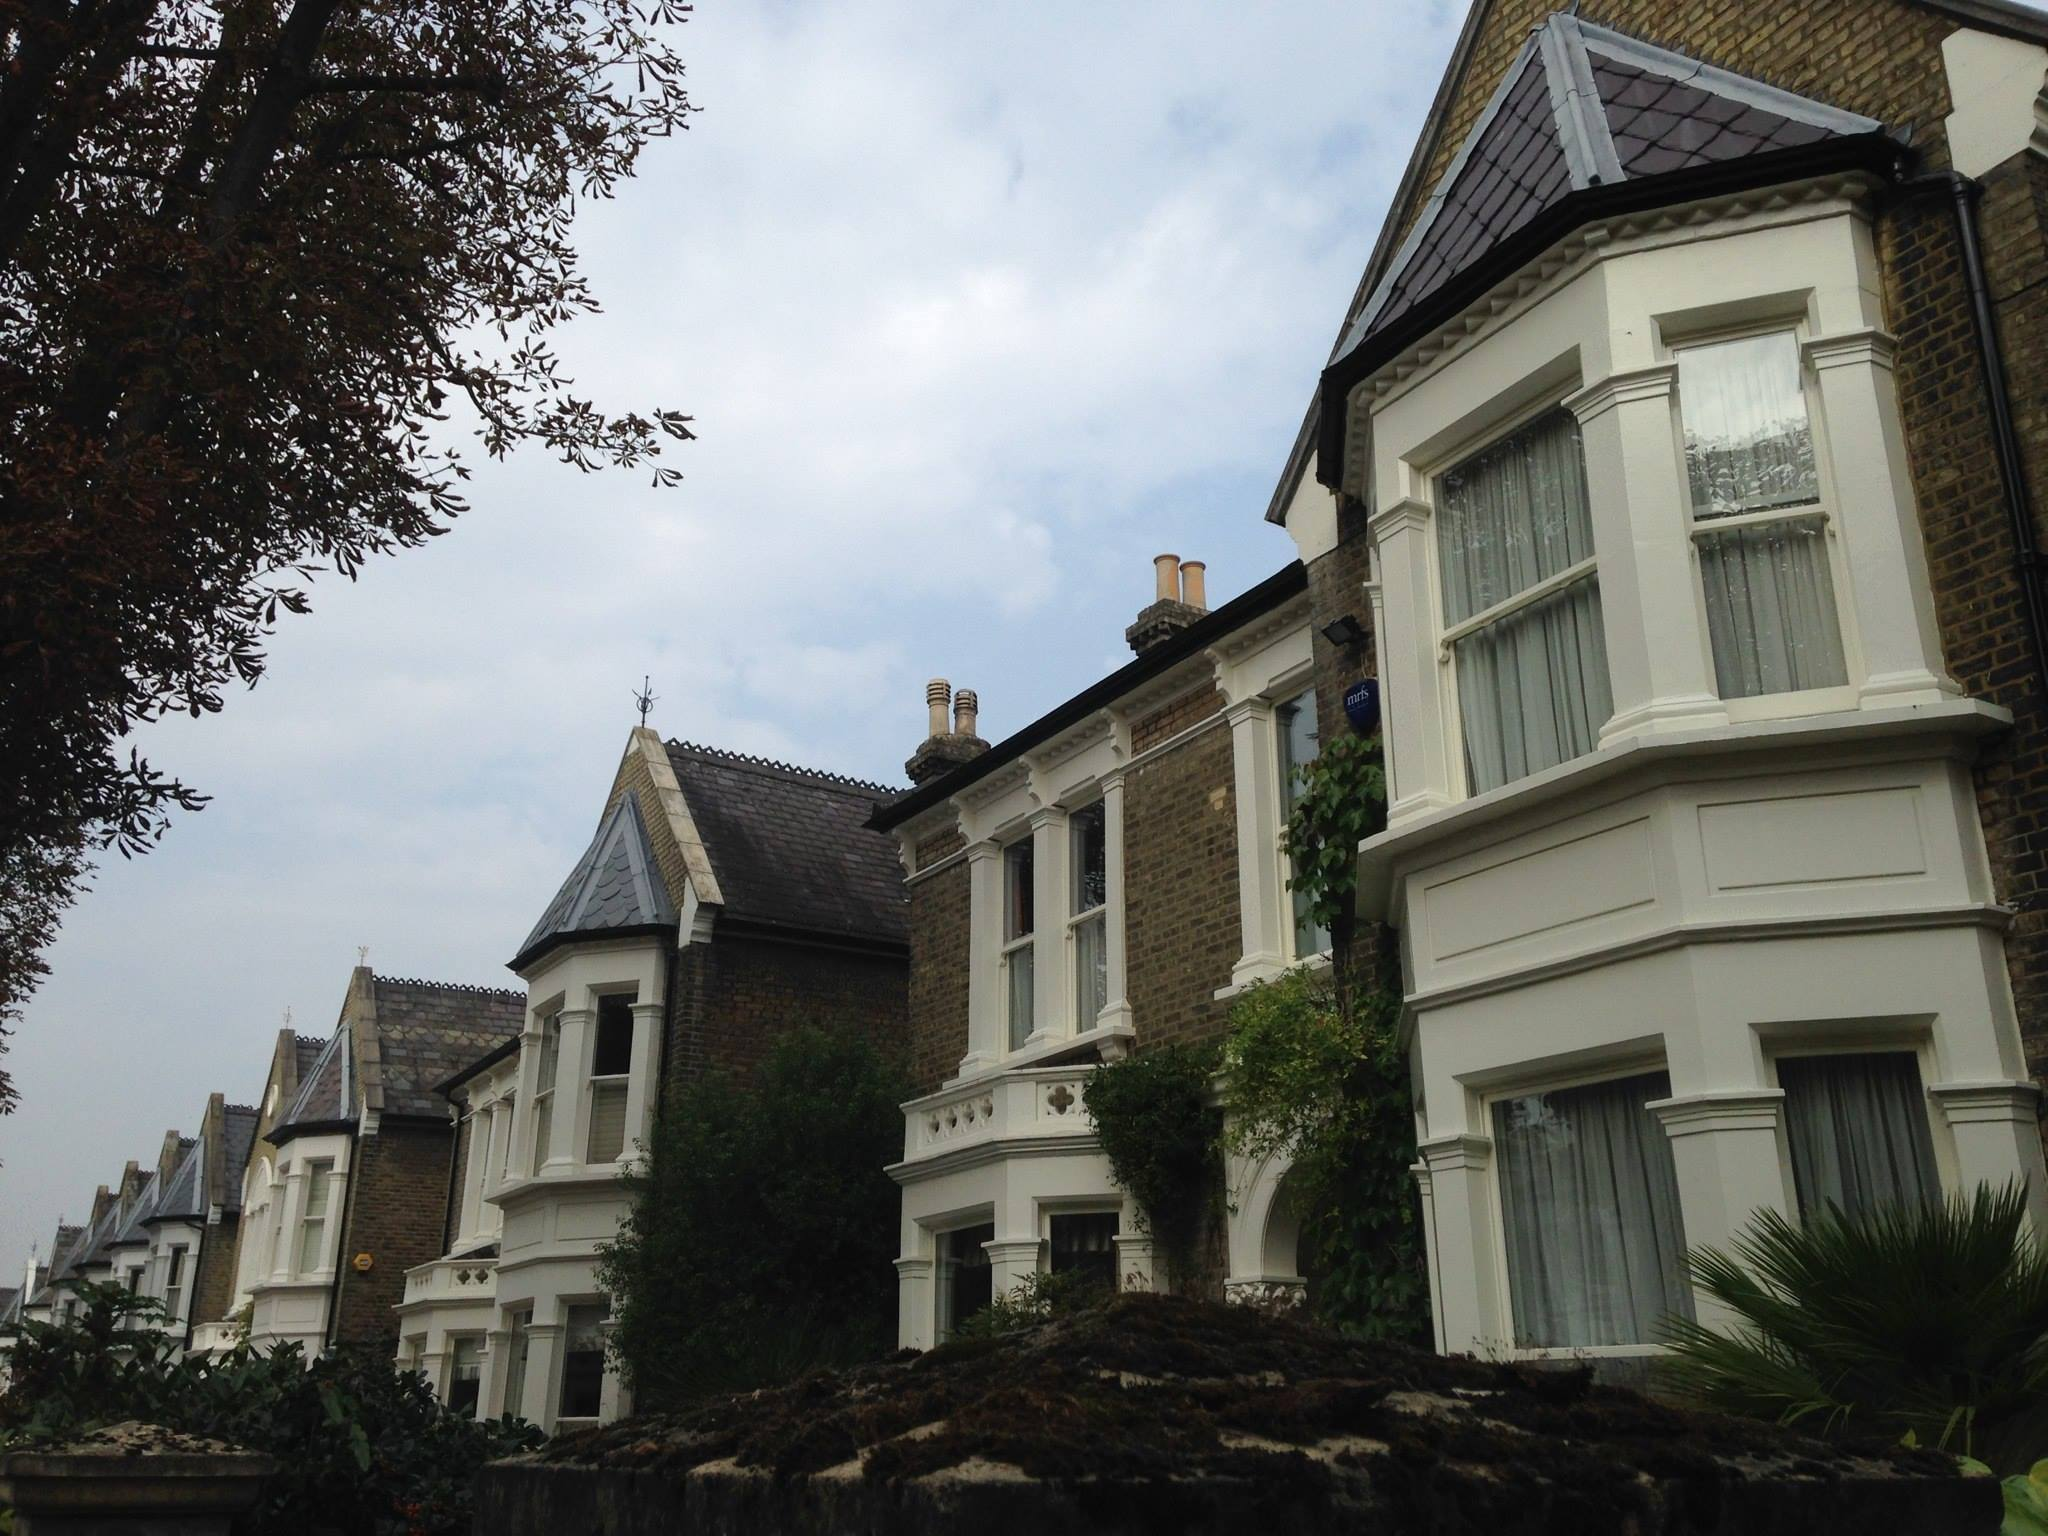 Wordless Wednesday: Beautiful Chiswick, UK